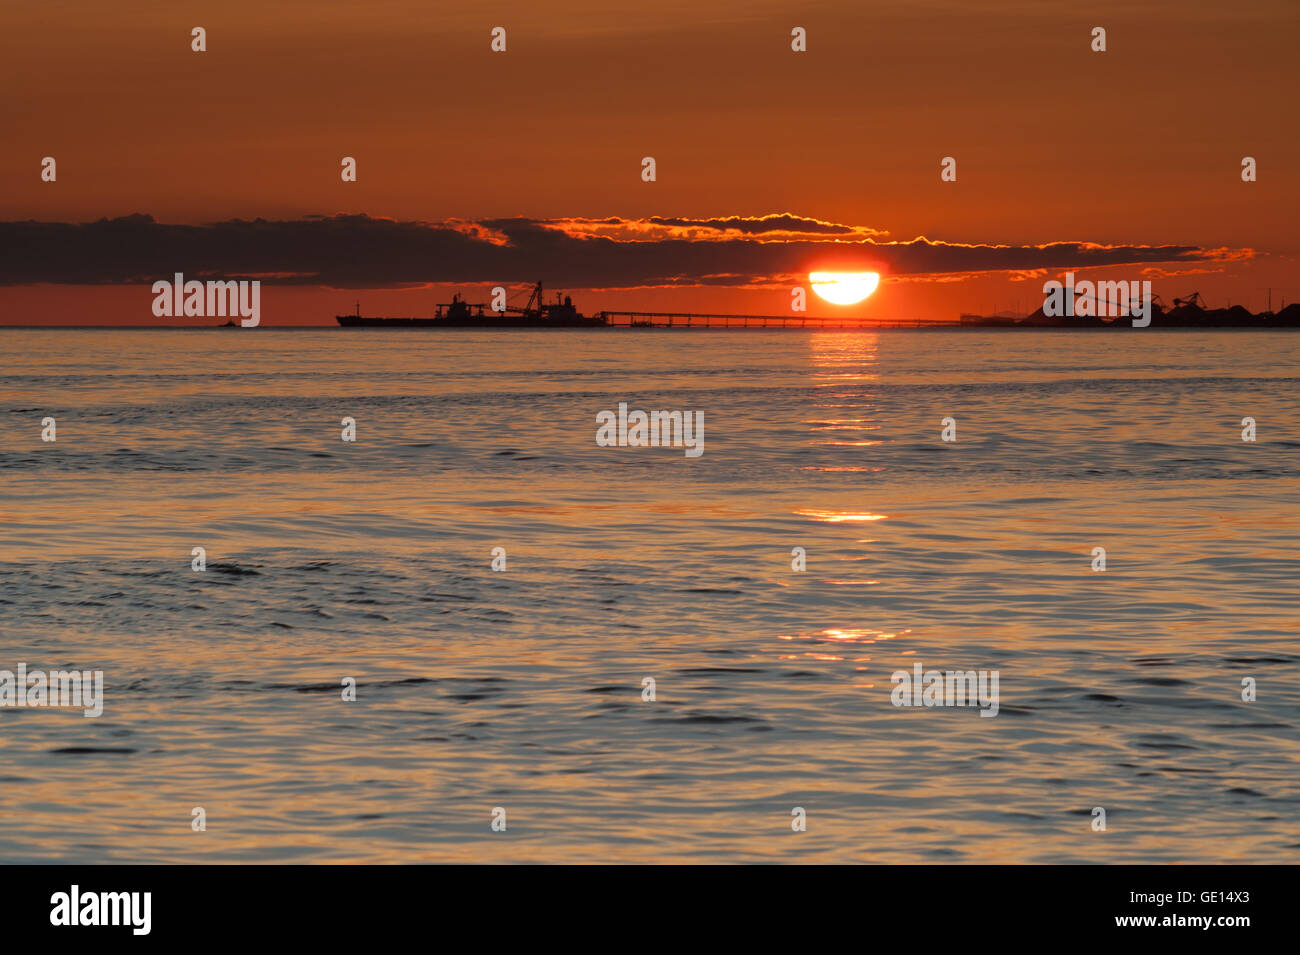 ship silhouette at sunset on Pacific ocean at Point Roberts, Washington, USA - Stock Image